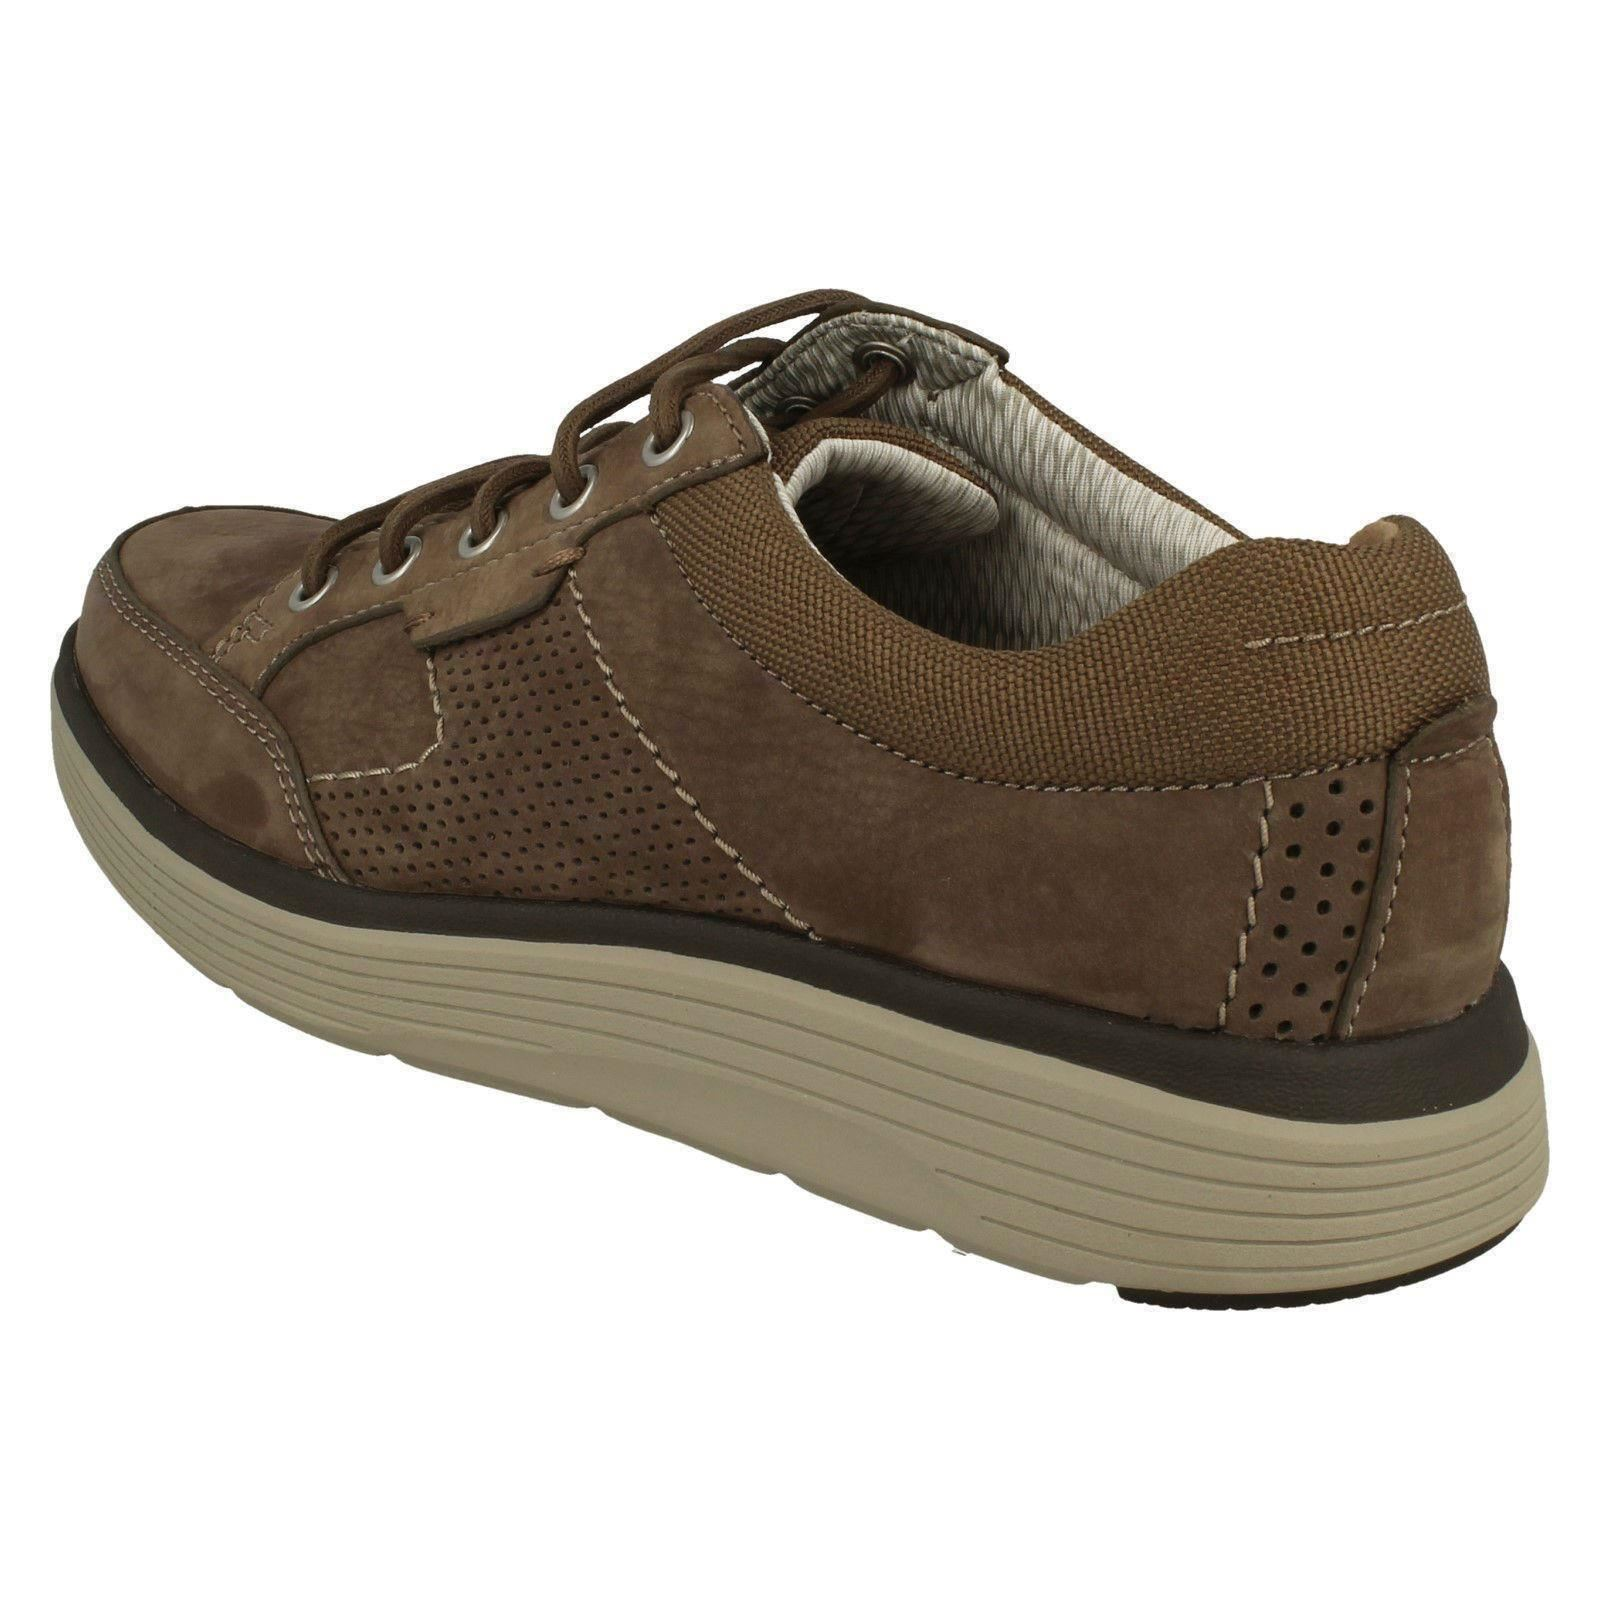 Nubuck By Shoes Men's Casual Lace Abode Up Unstructured Clarks Olive StyleUn H9I2eWEDbY